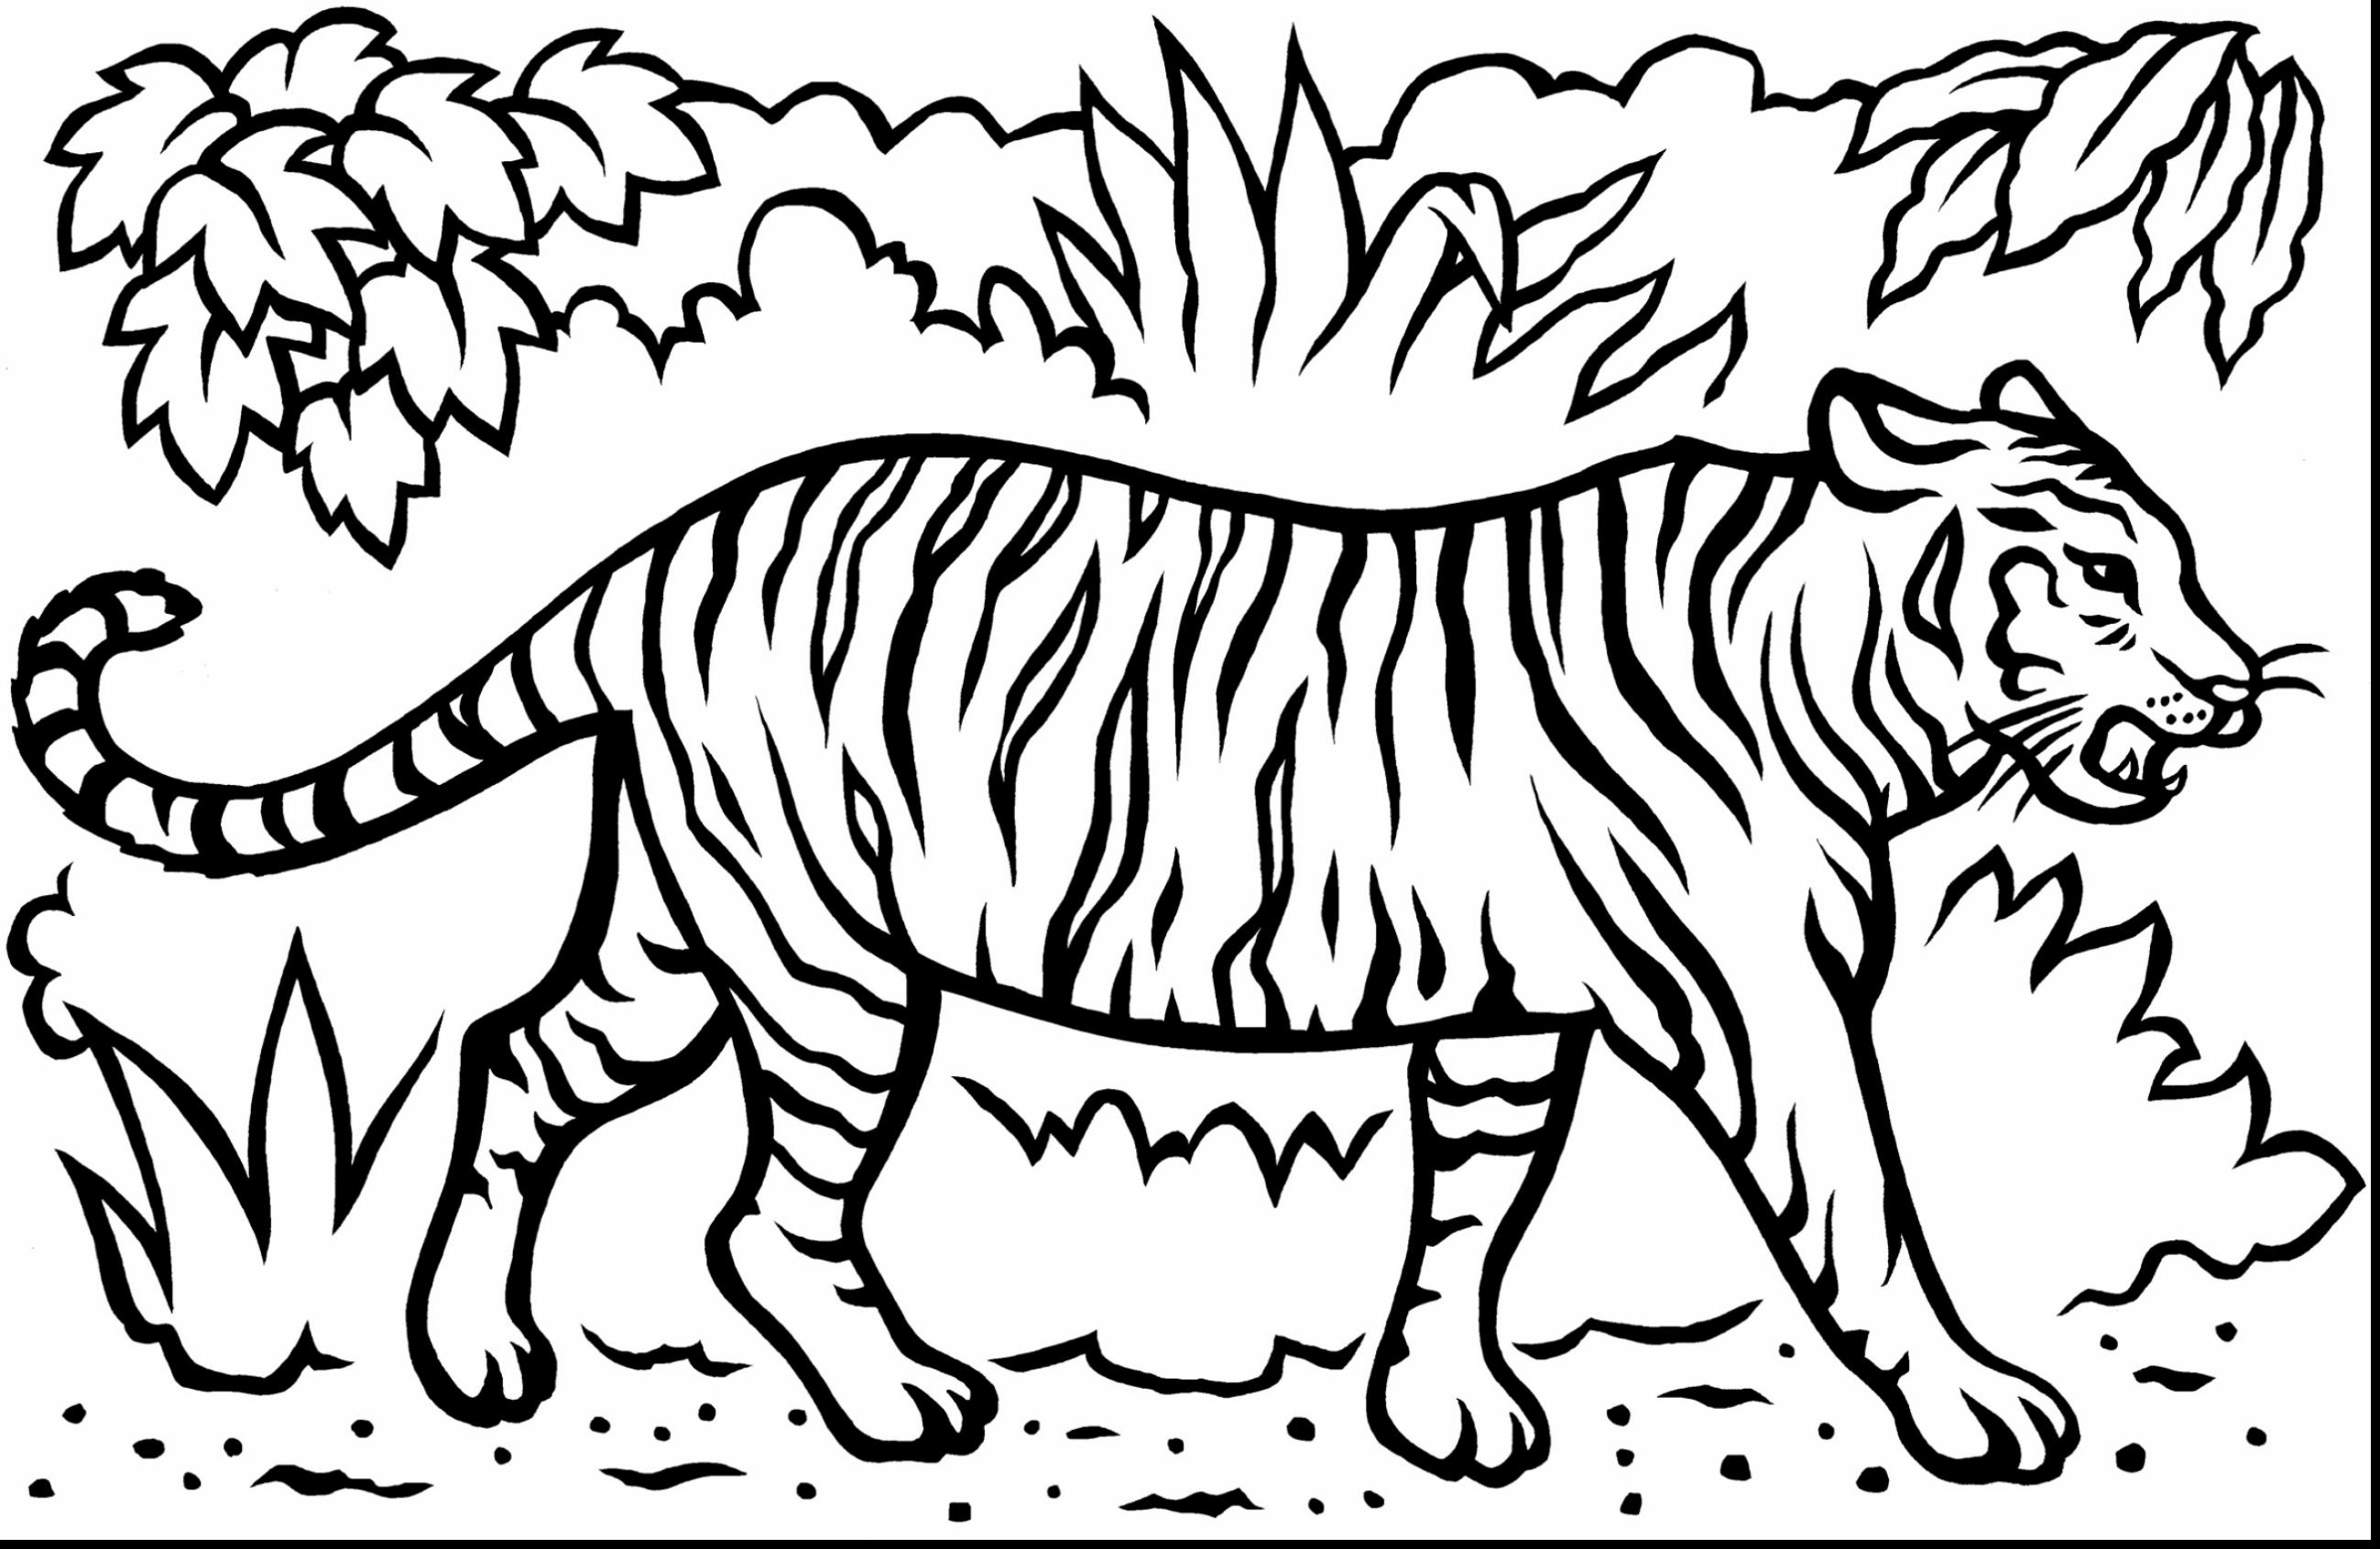 tiger pictures to print tigers coloring pages download and print tigers coloring pictures tiger print to